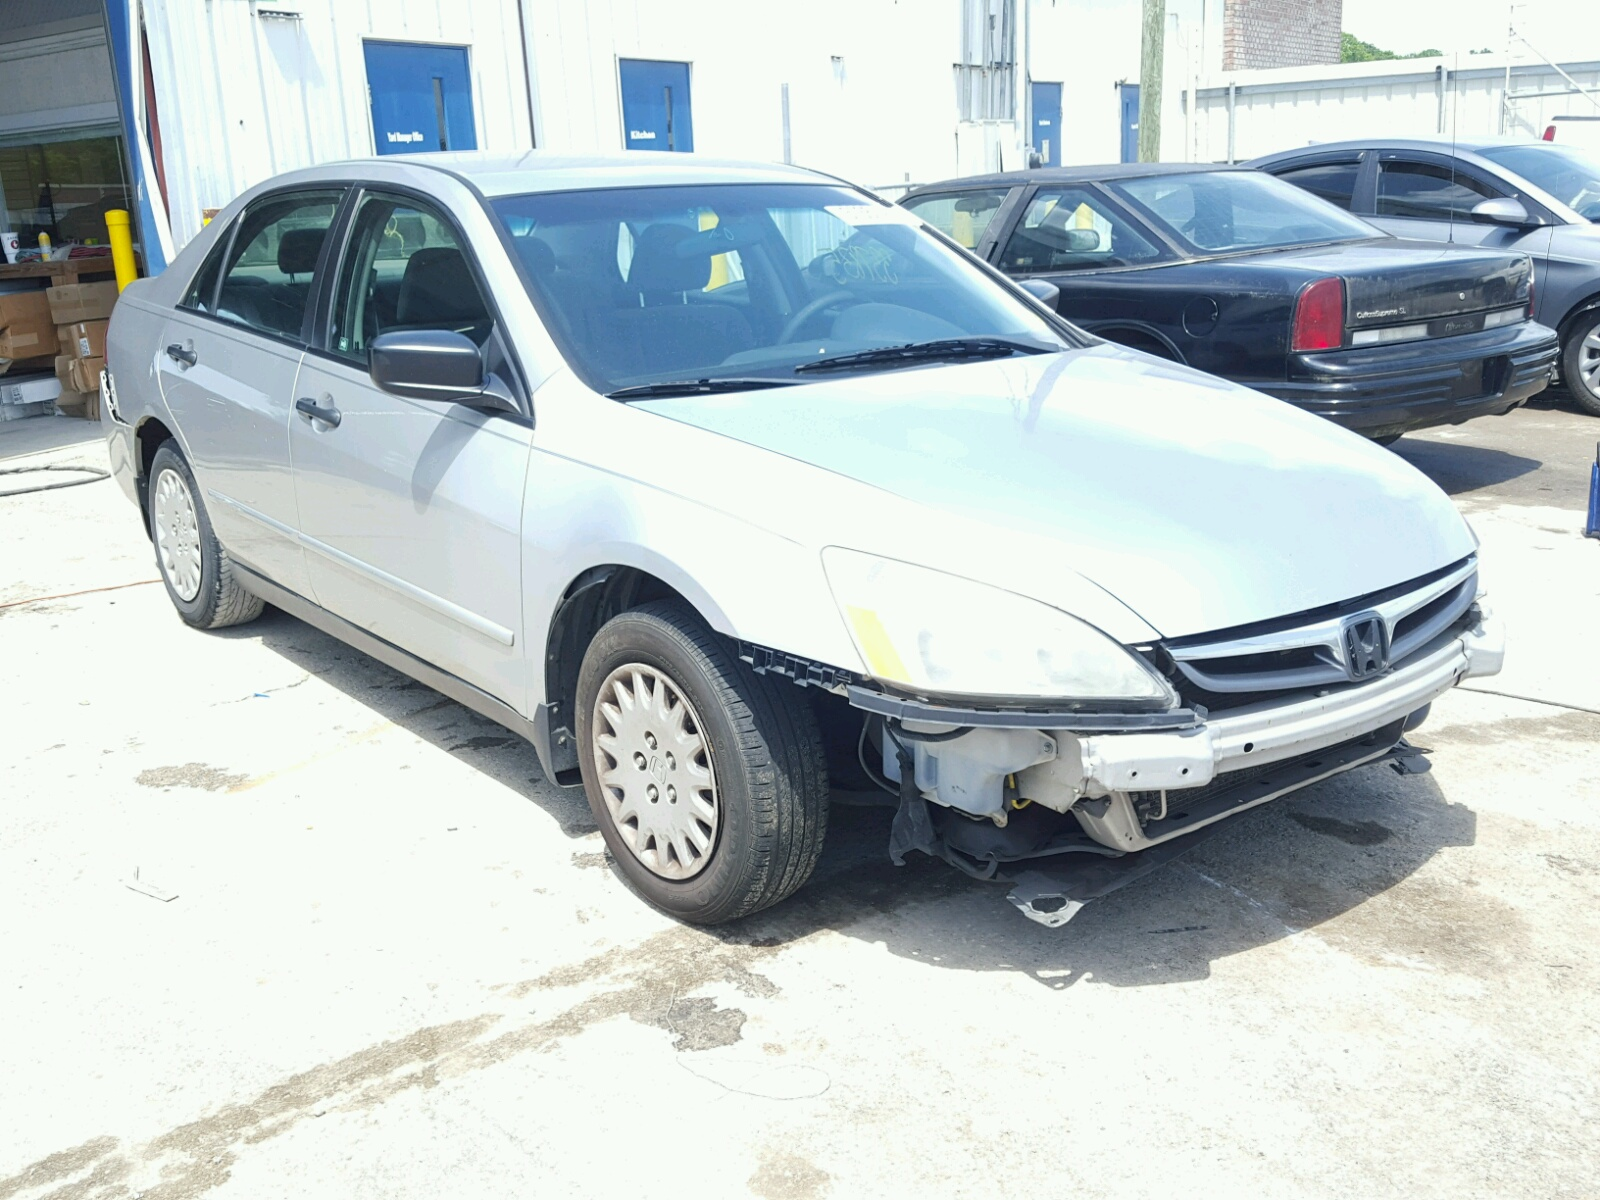 2007 Honda Accord VAL for sale at Copart Montgomery AL Lot